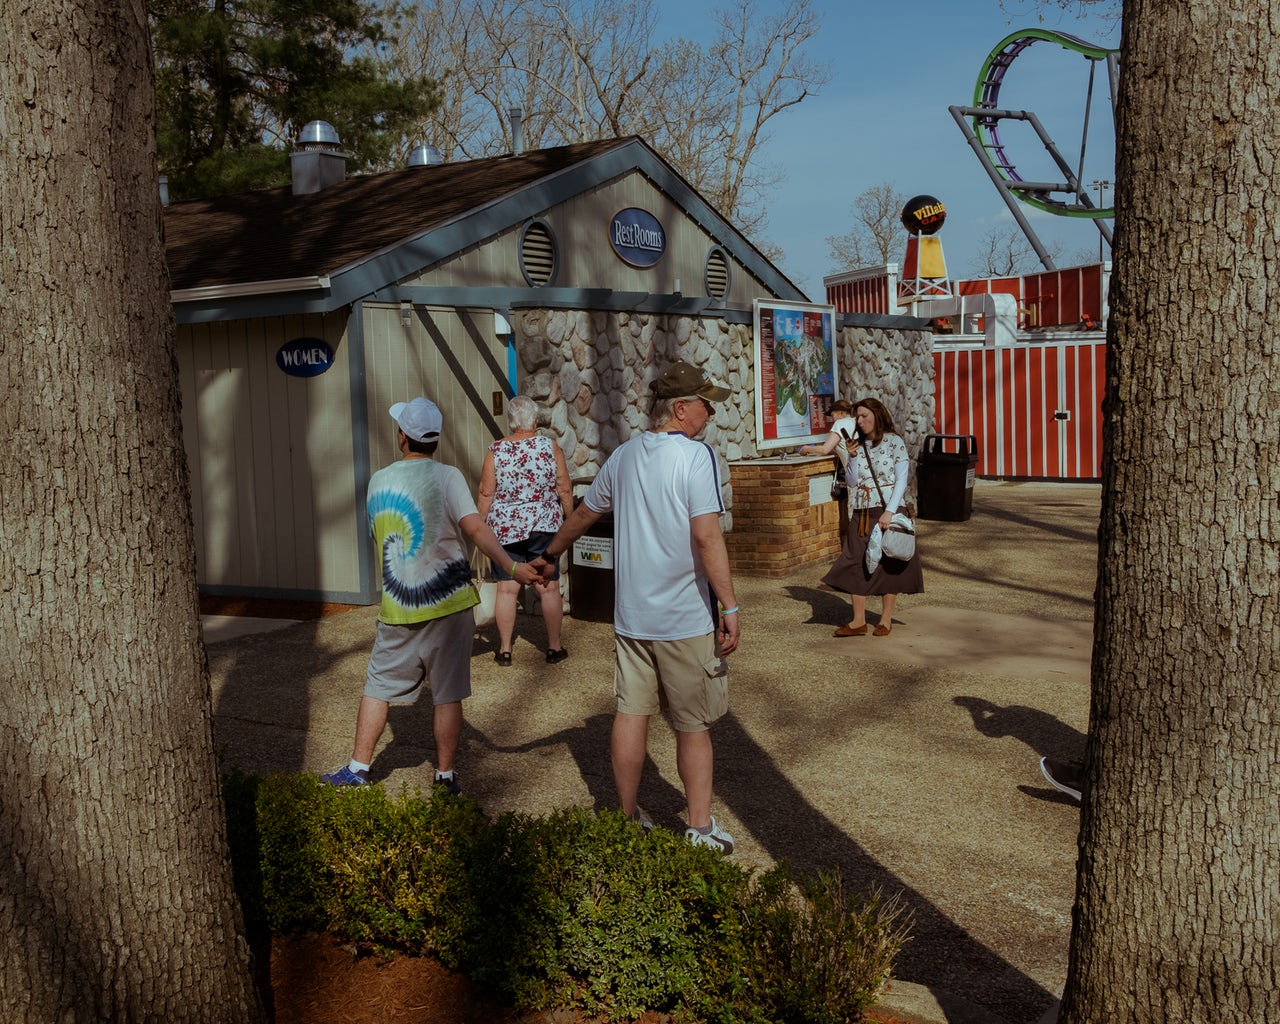 A man and a young boy hold hands outside of a restroom adjacent to the Bizarro roller coaster.